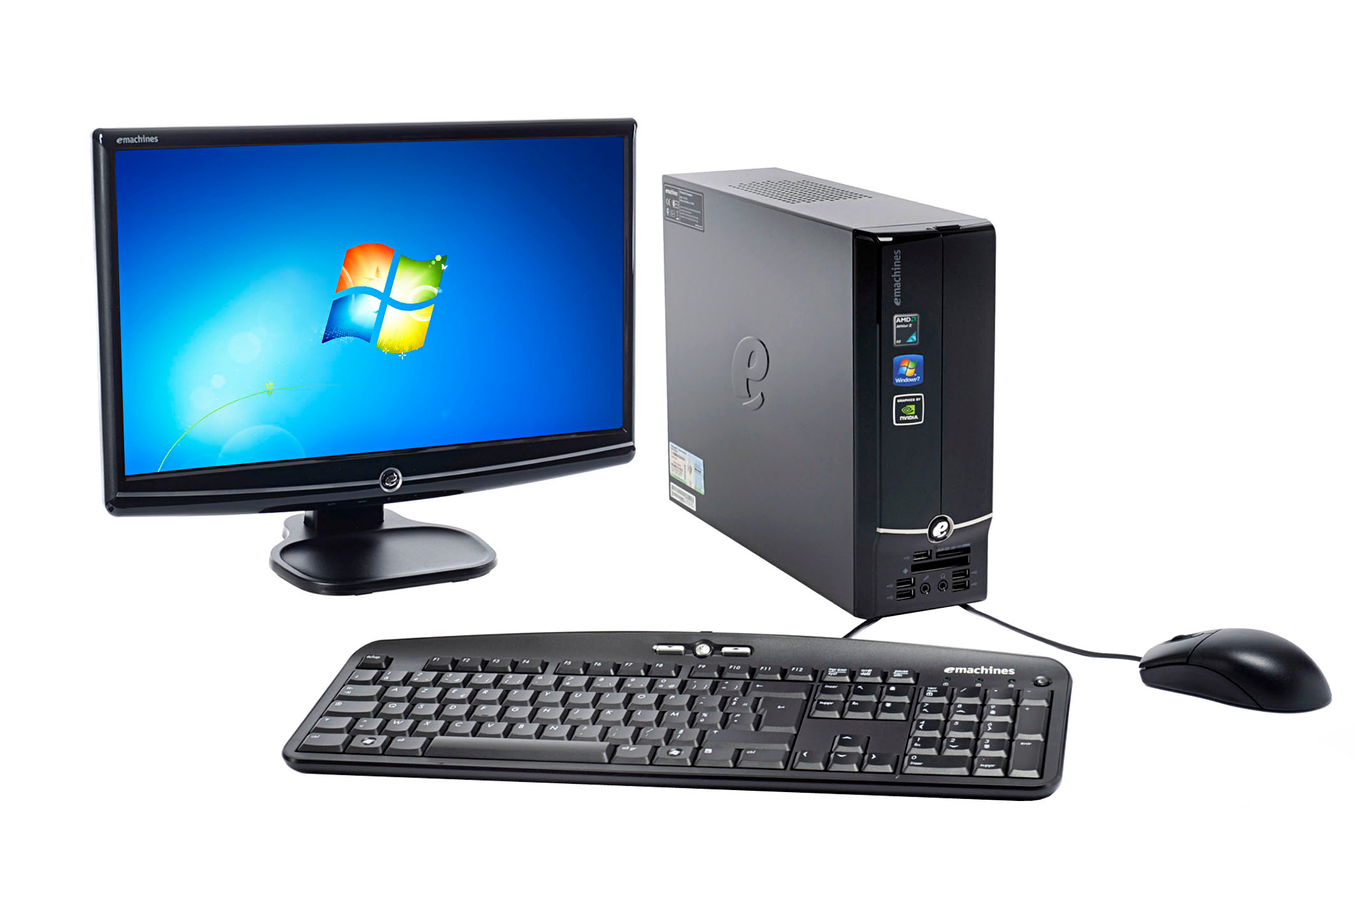 pc de bureau emachines el1352 019 20 quot el1352 019ob20 quot 3307620 darty